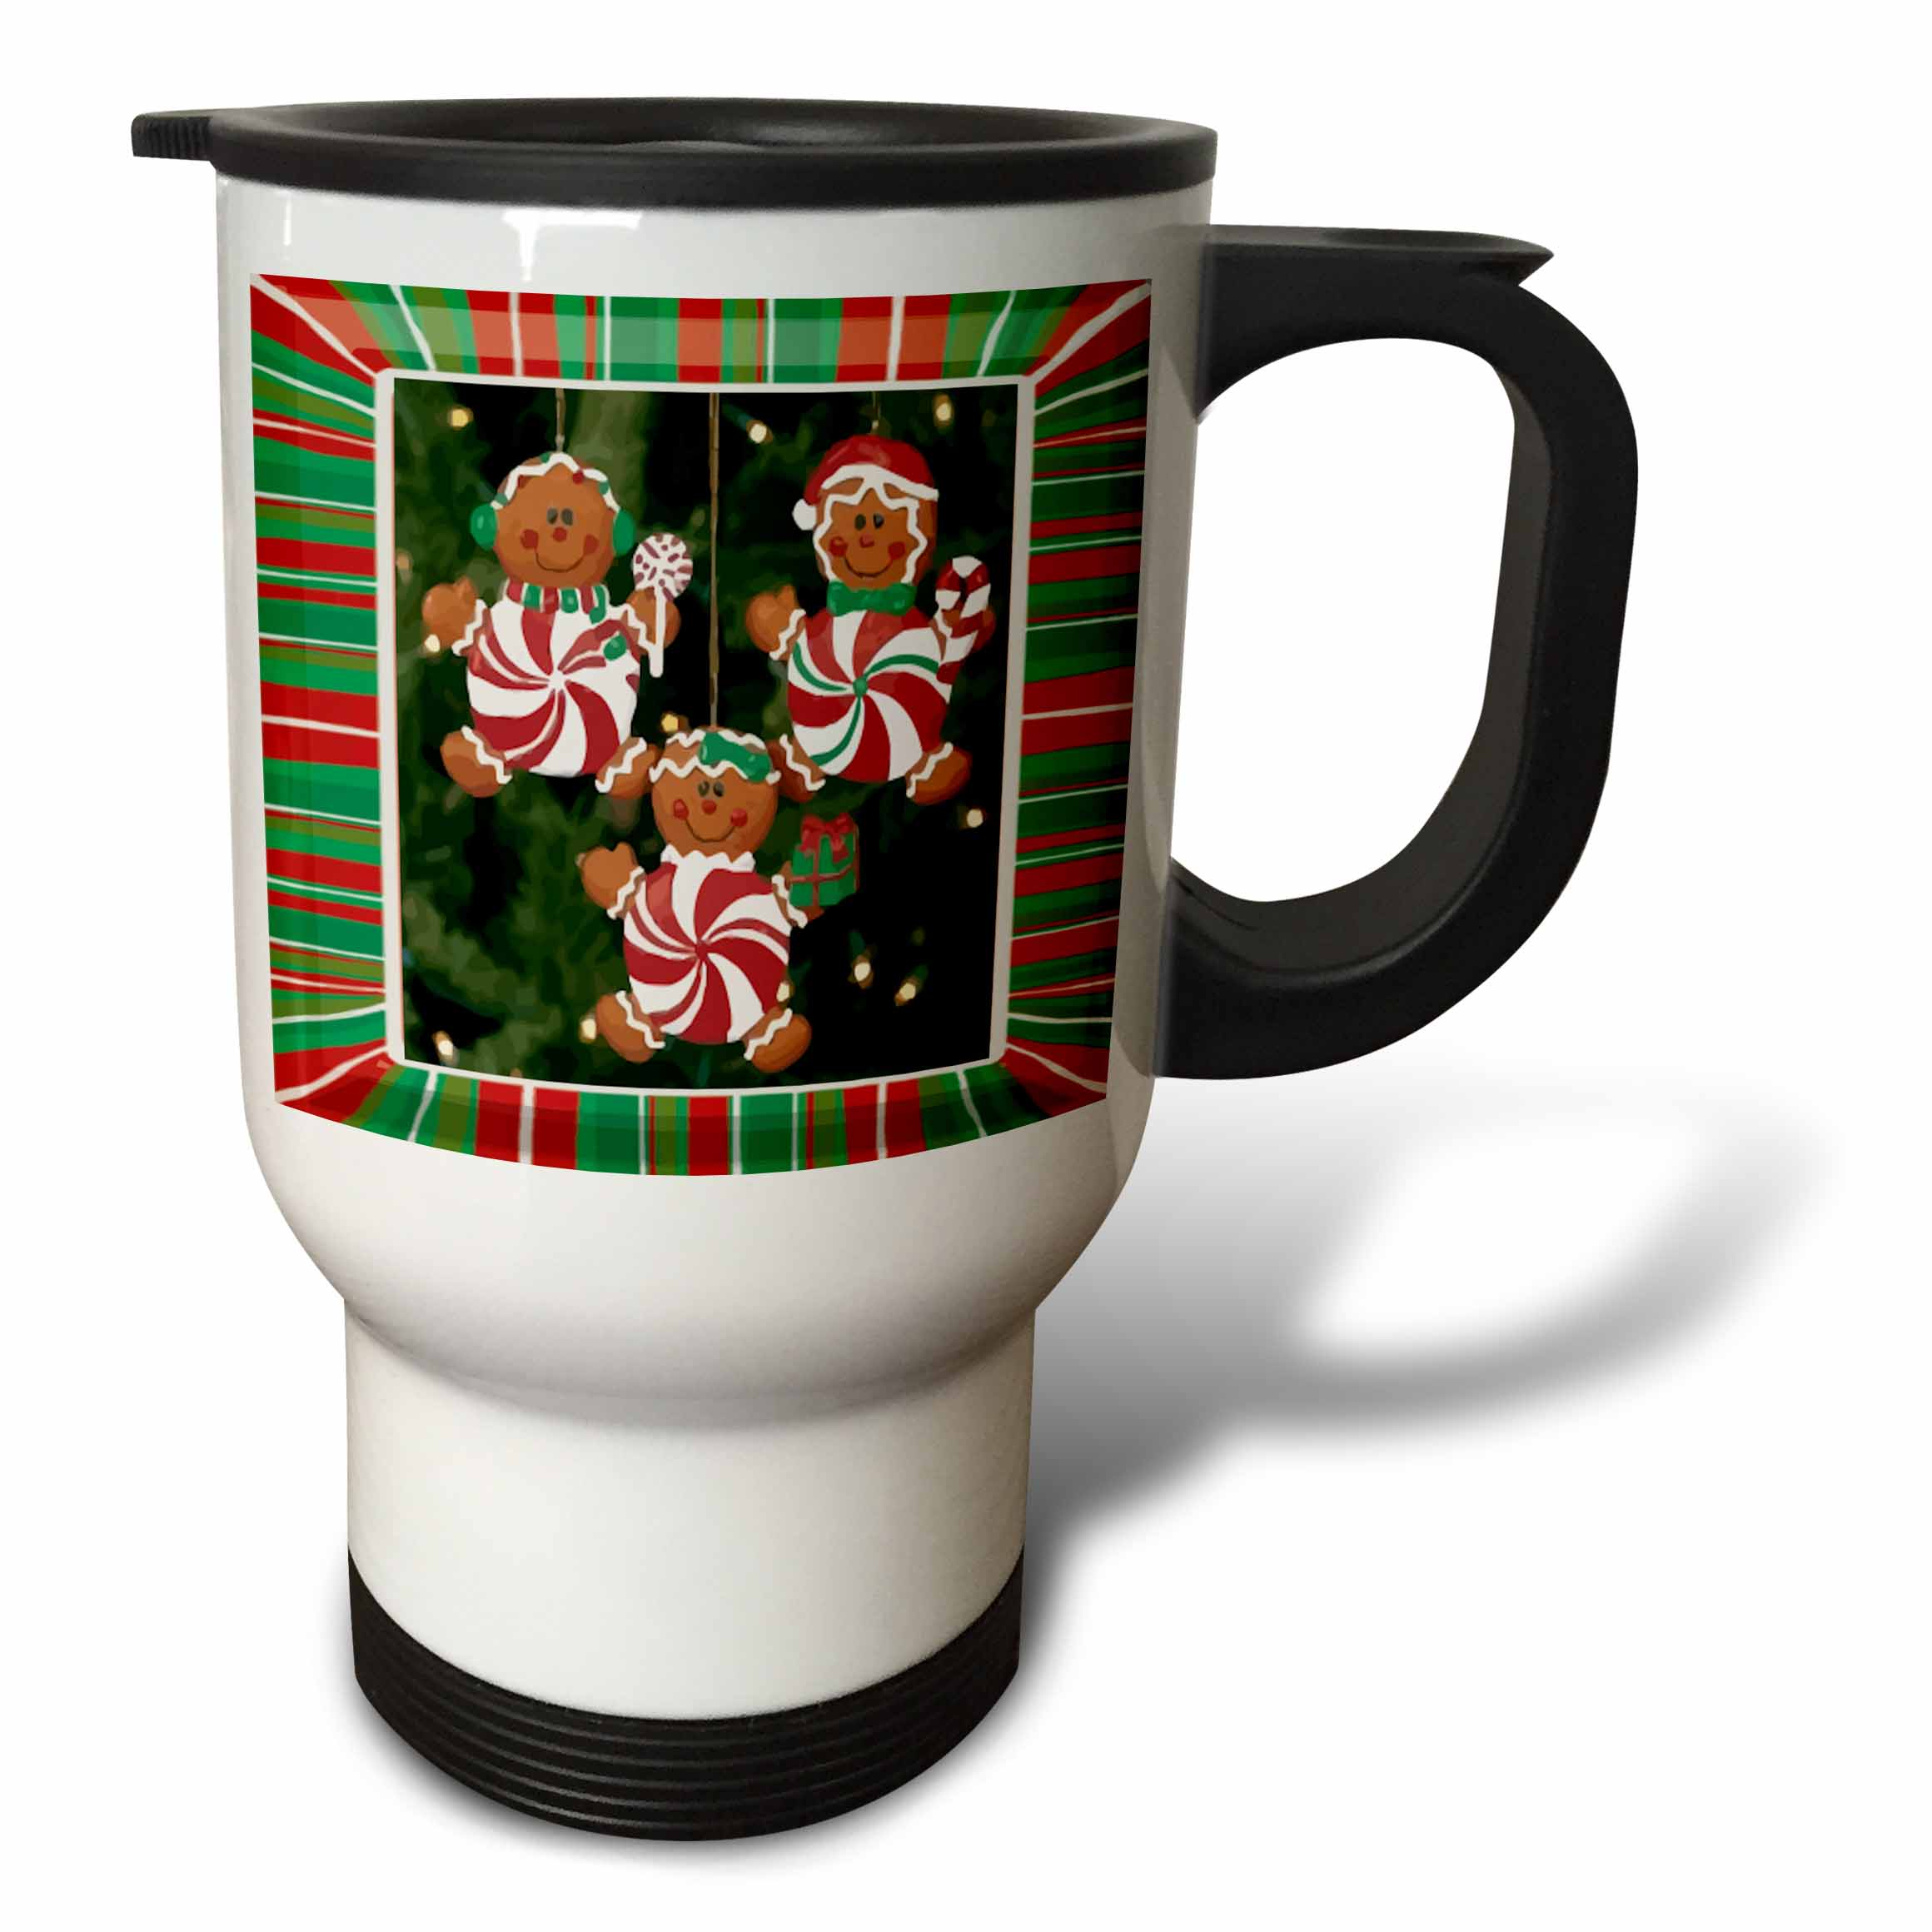 3dRose Peppermint Gingerbread Ornaments, Travel Mug, 14oz, Stainless Steel